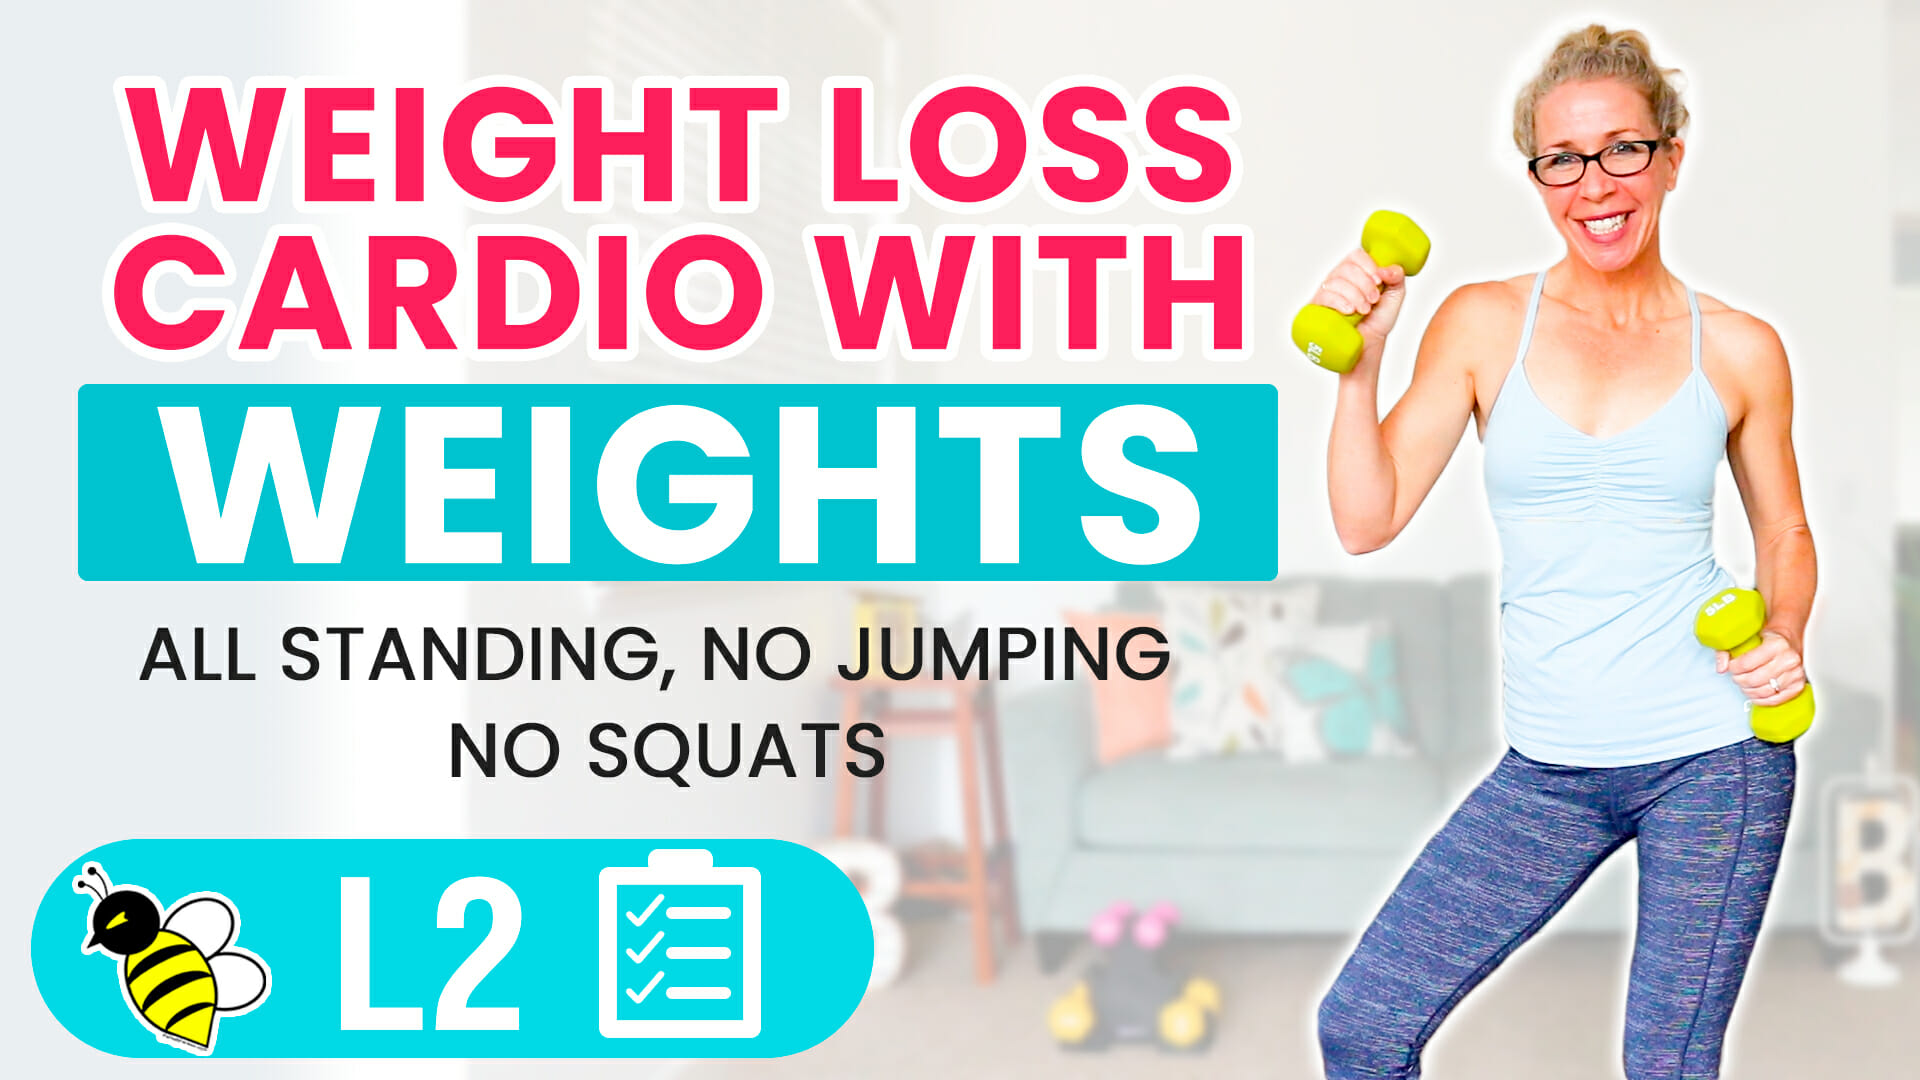 WEIGHT LOSS CARDIO with WEIGHTS 25 minute low impact workout